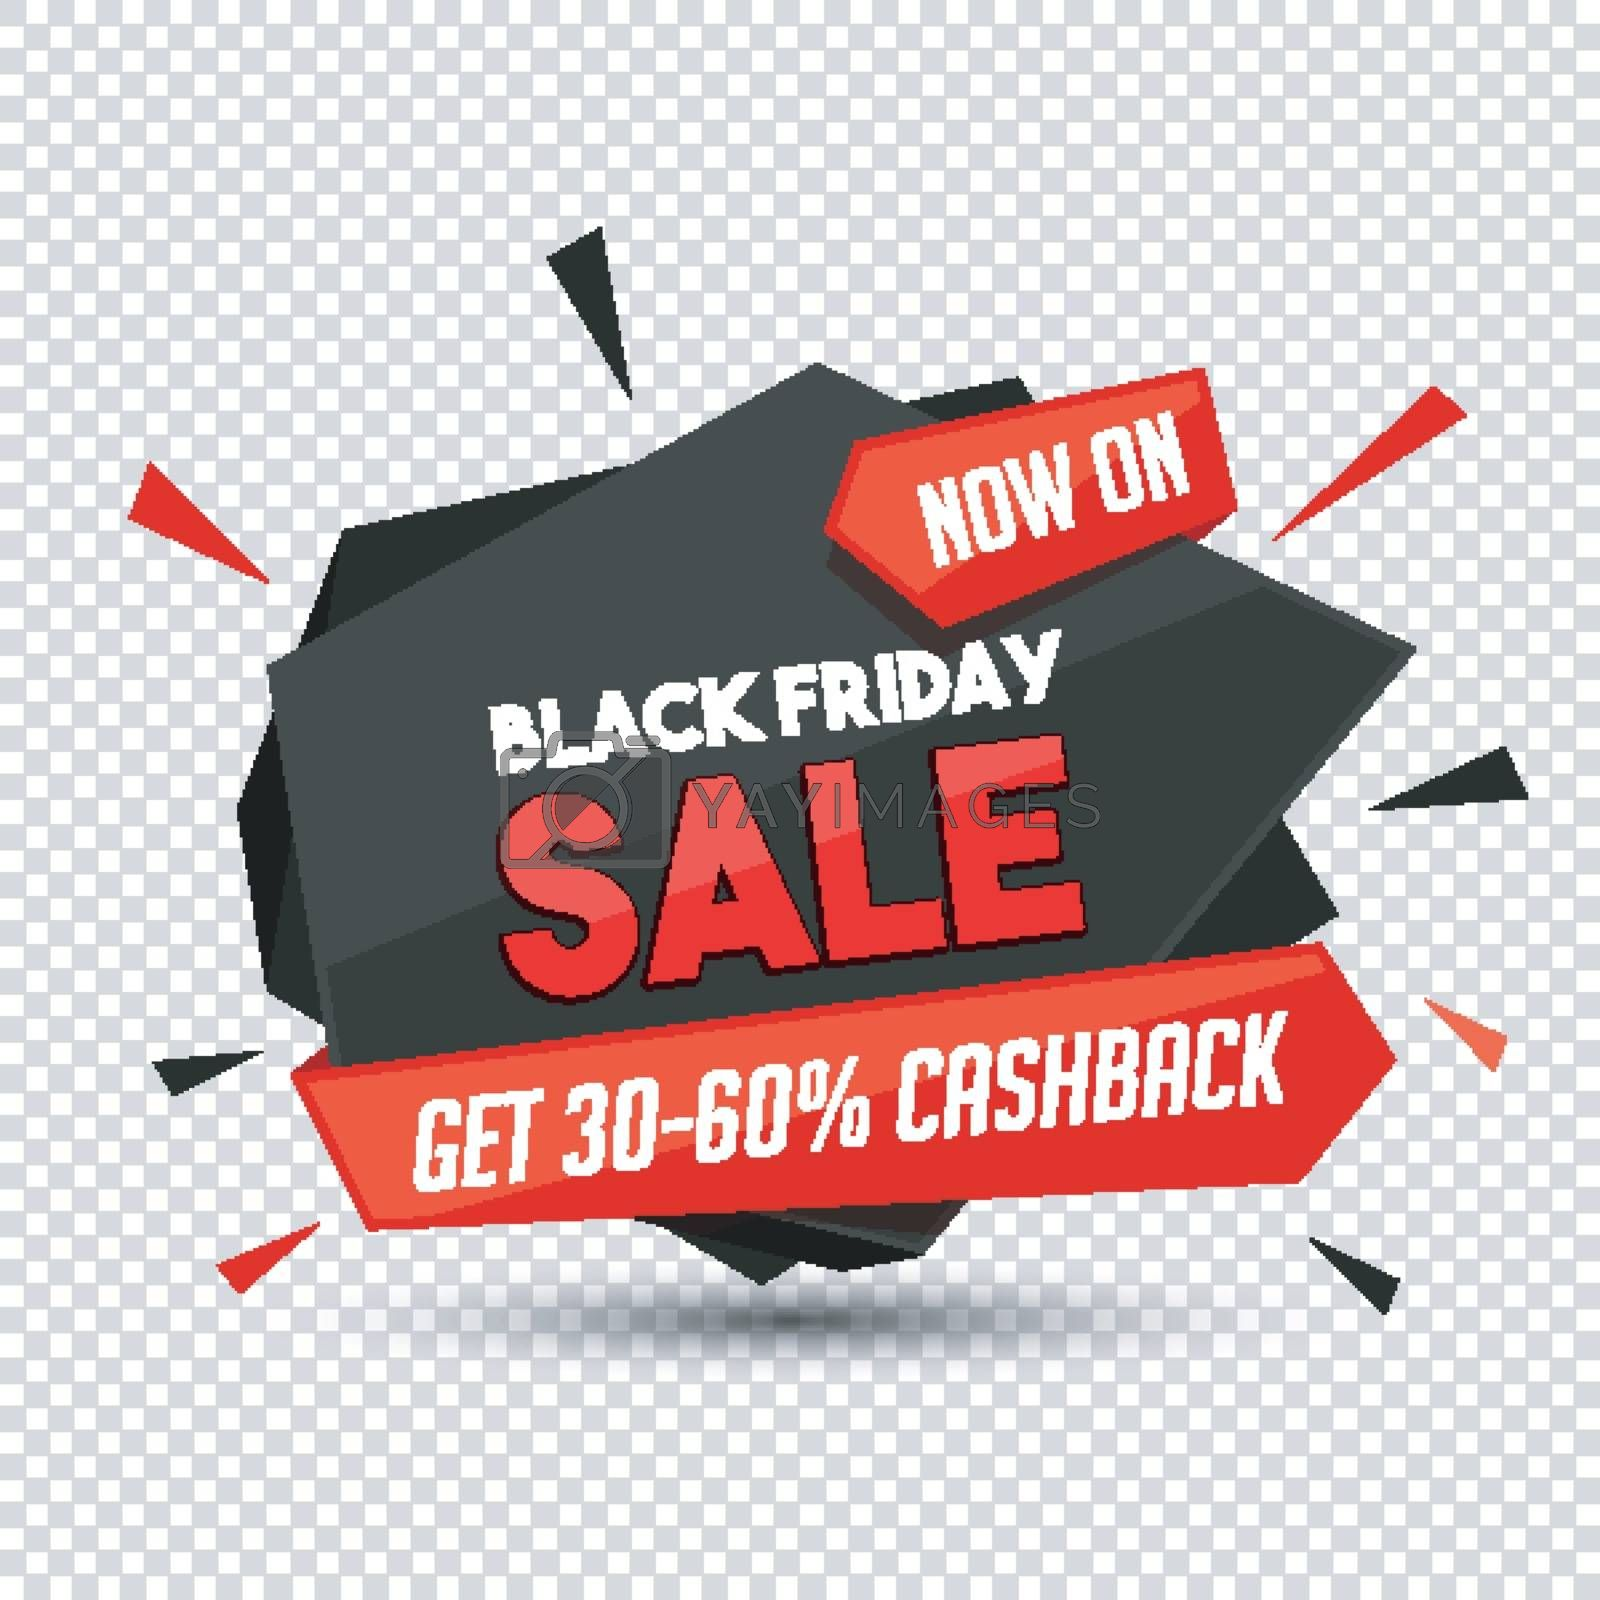 Get 30-60% cashback offer on Black Friday sale with abstract elements on png background.